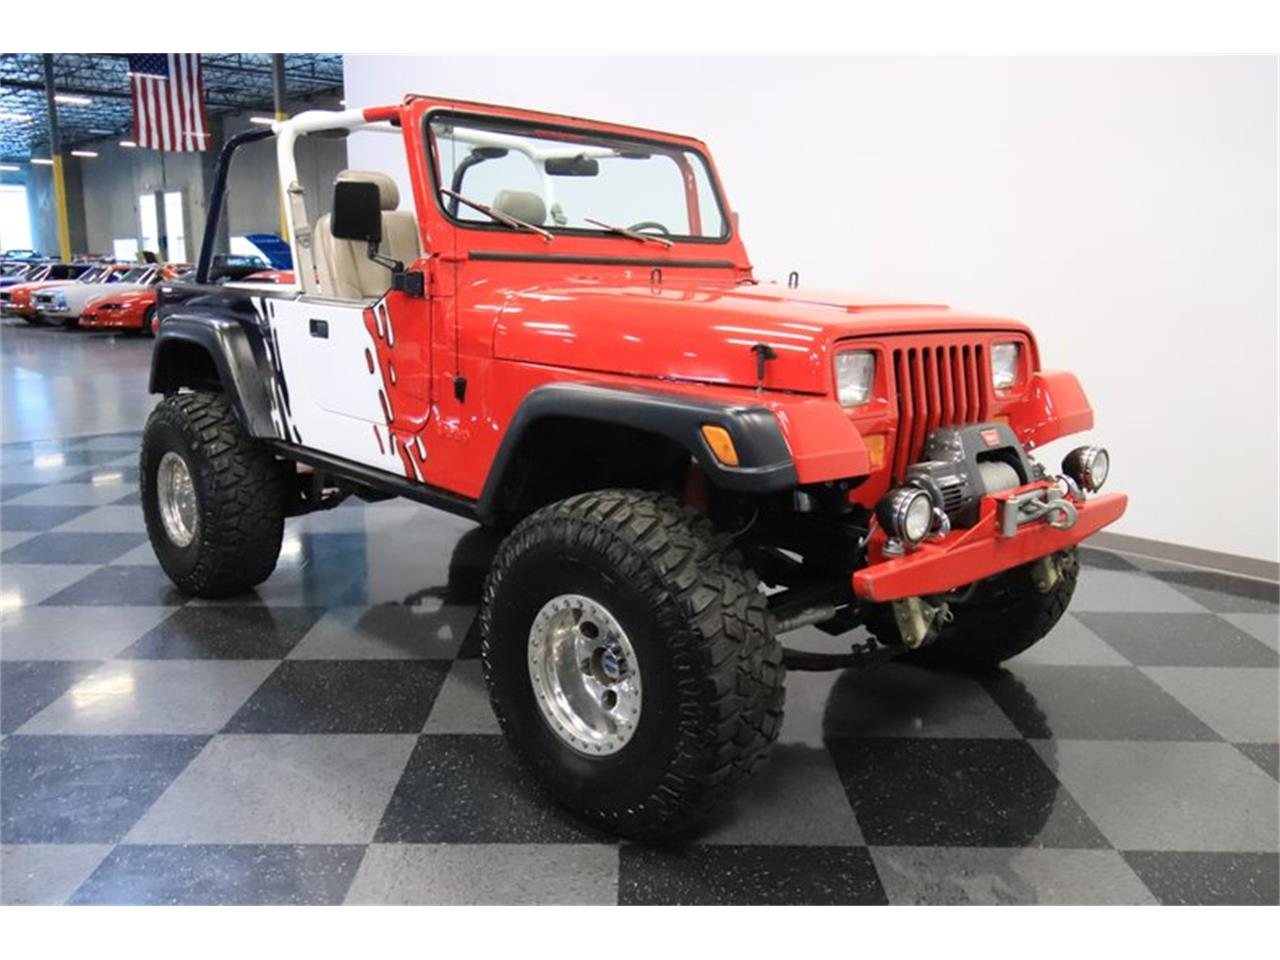 Large Picture of 1983 CJ8 Scrambler located in Mesa Arizona - $36,995.00 Offered by Streetside Classics - Phoenix - Q5HM